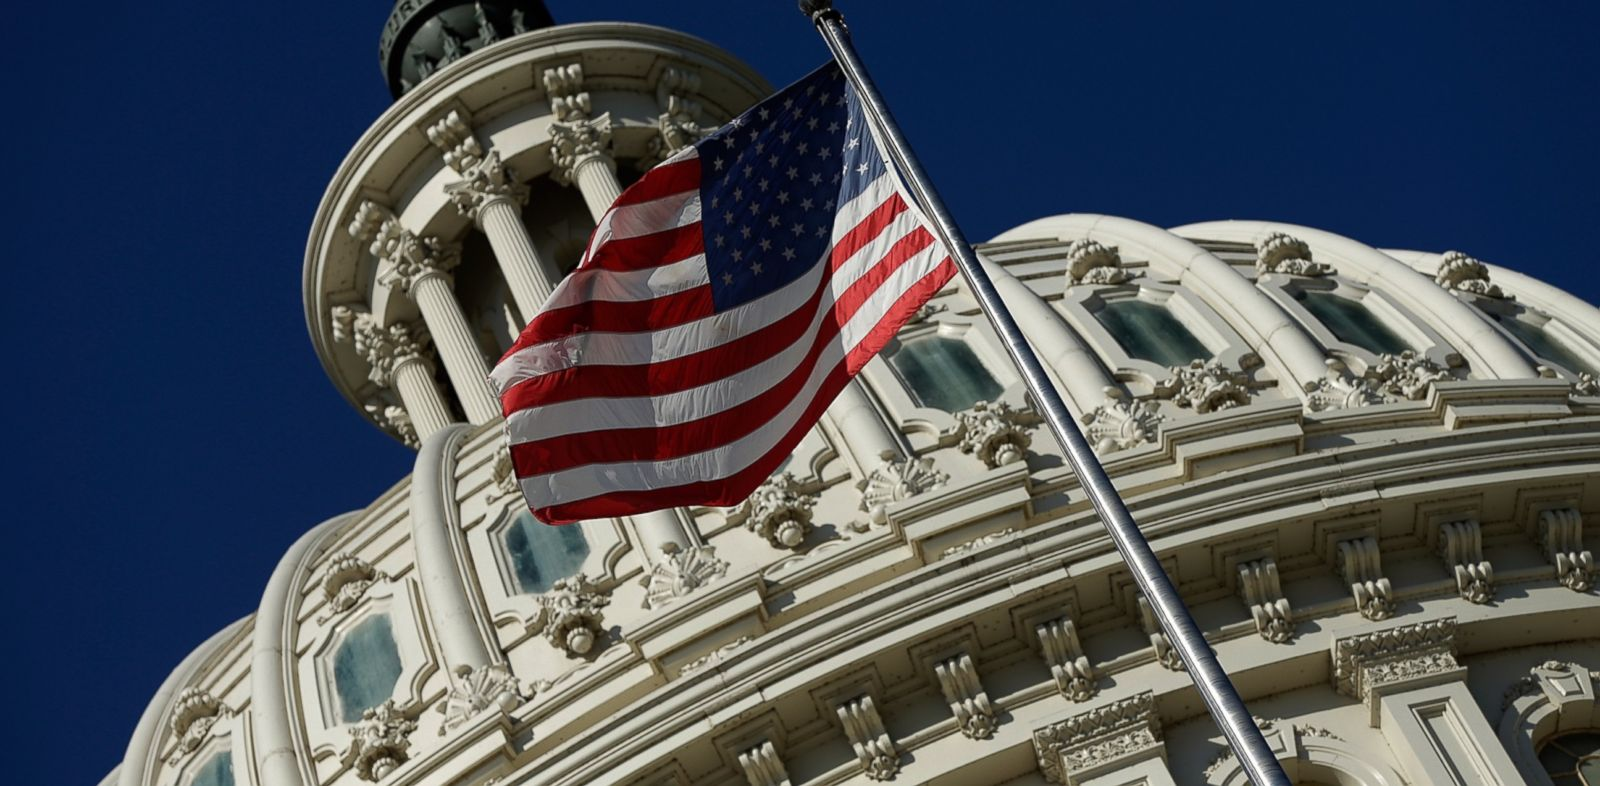 PHOTO: An American flag waves outside the United States Capitol building as Congress remains gridlocked over legislation to continue funding the federal government Sept. 29, 2013 in Washington.